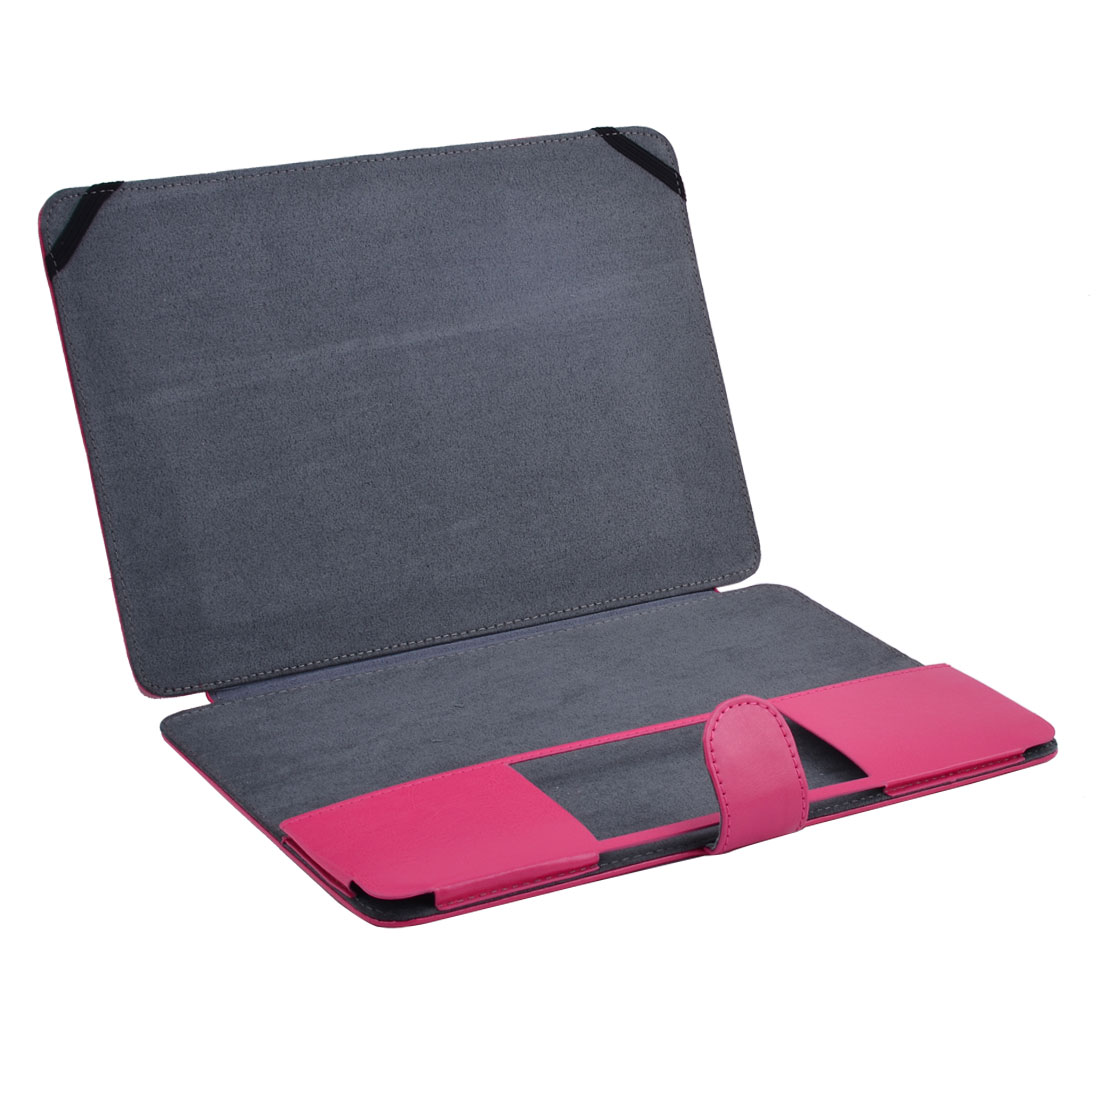 Laptop PU Leather Clip On Sleeve Case Book Magenta for Macbook Retina 12 Inch